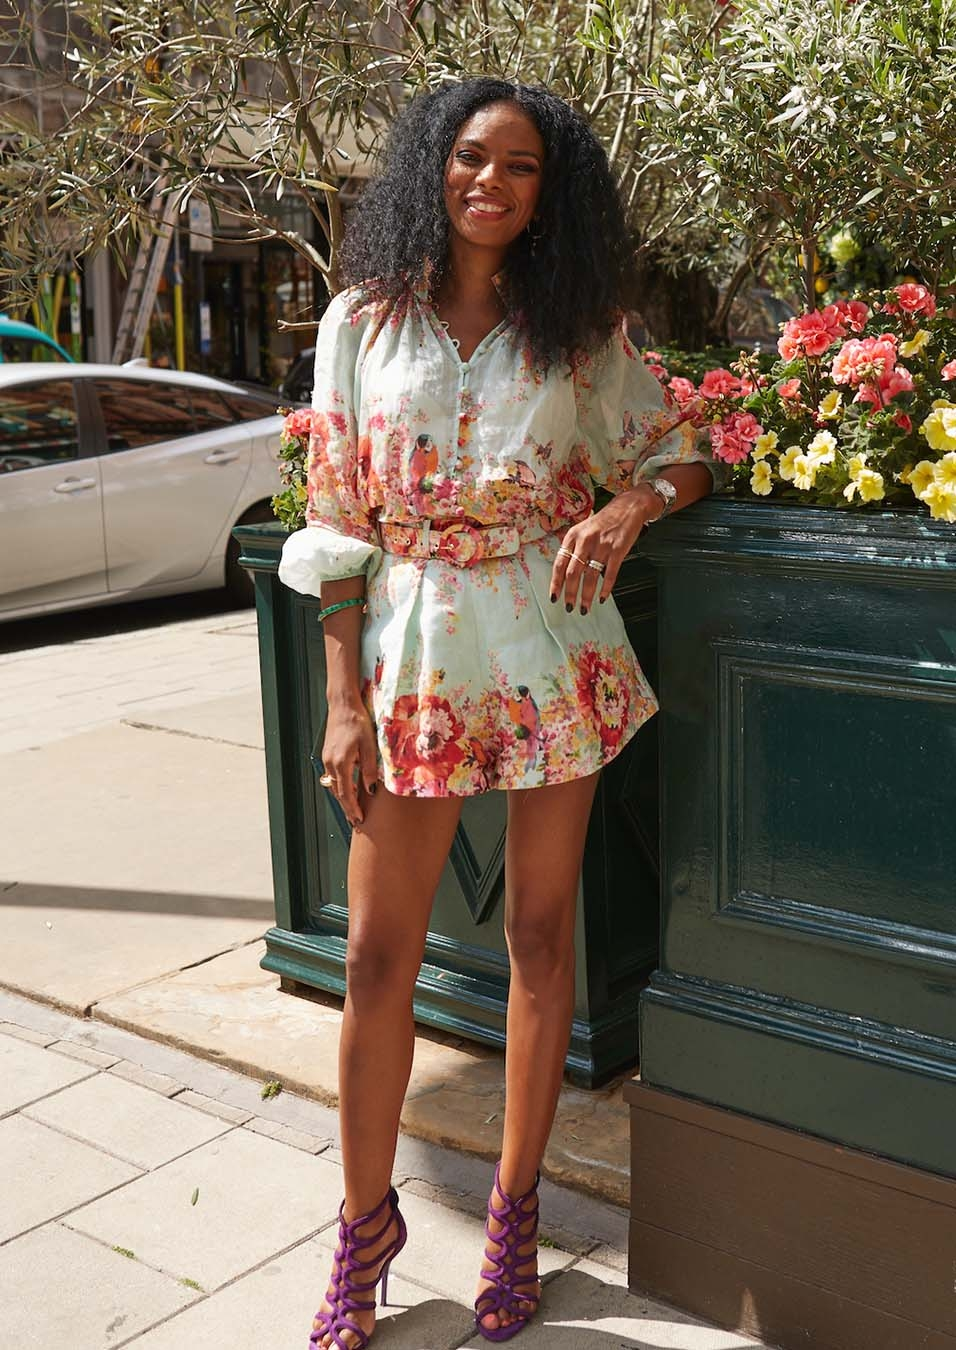 Noella Couraris Musunka in the Mae Billow Blouse and Floral Tuck Short